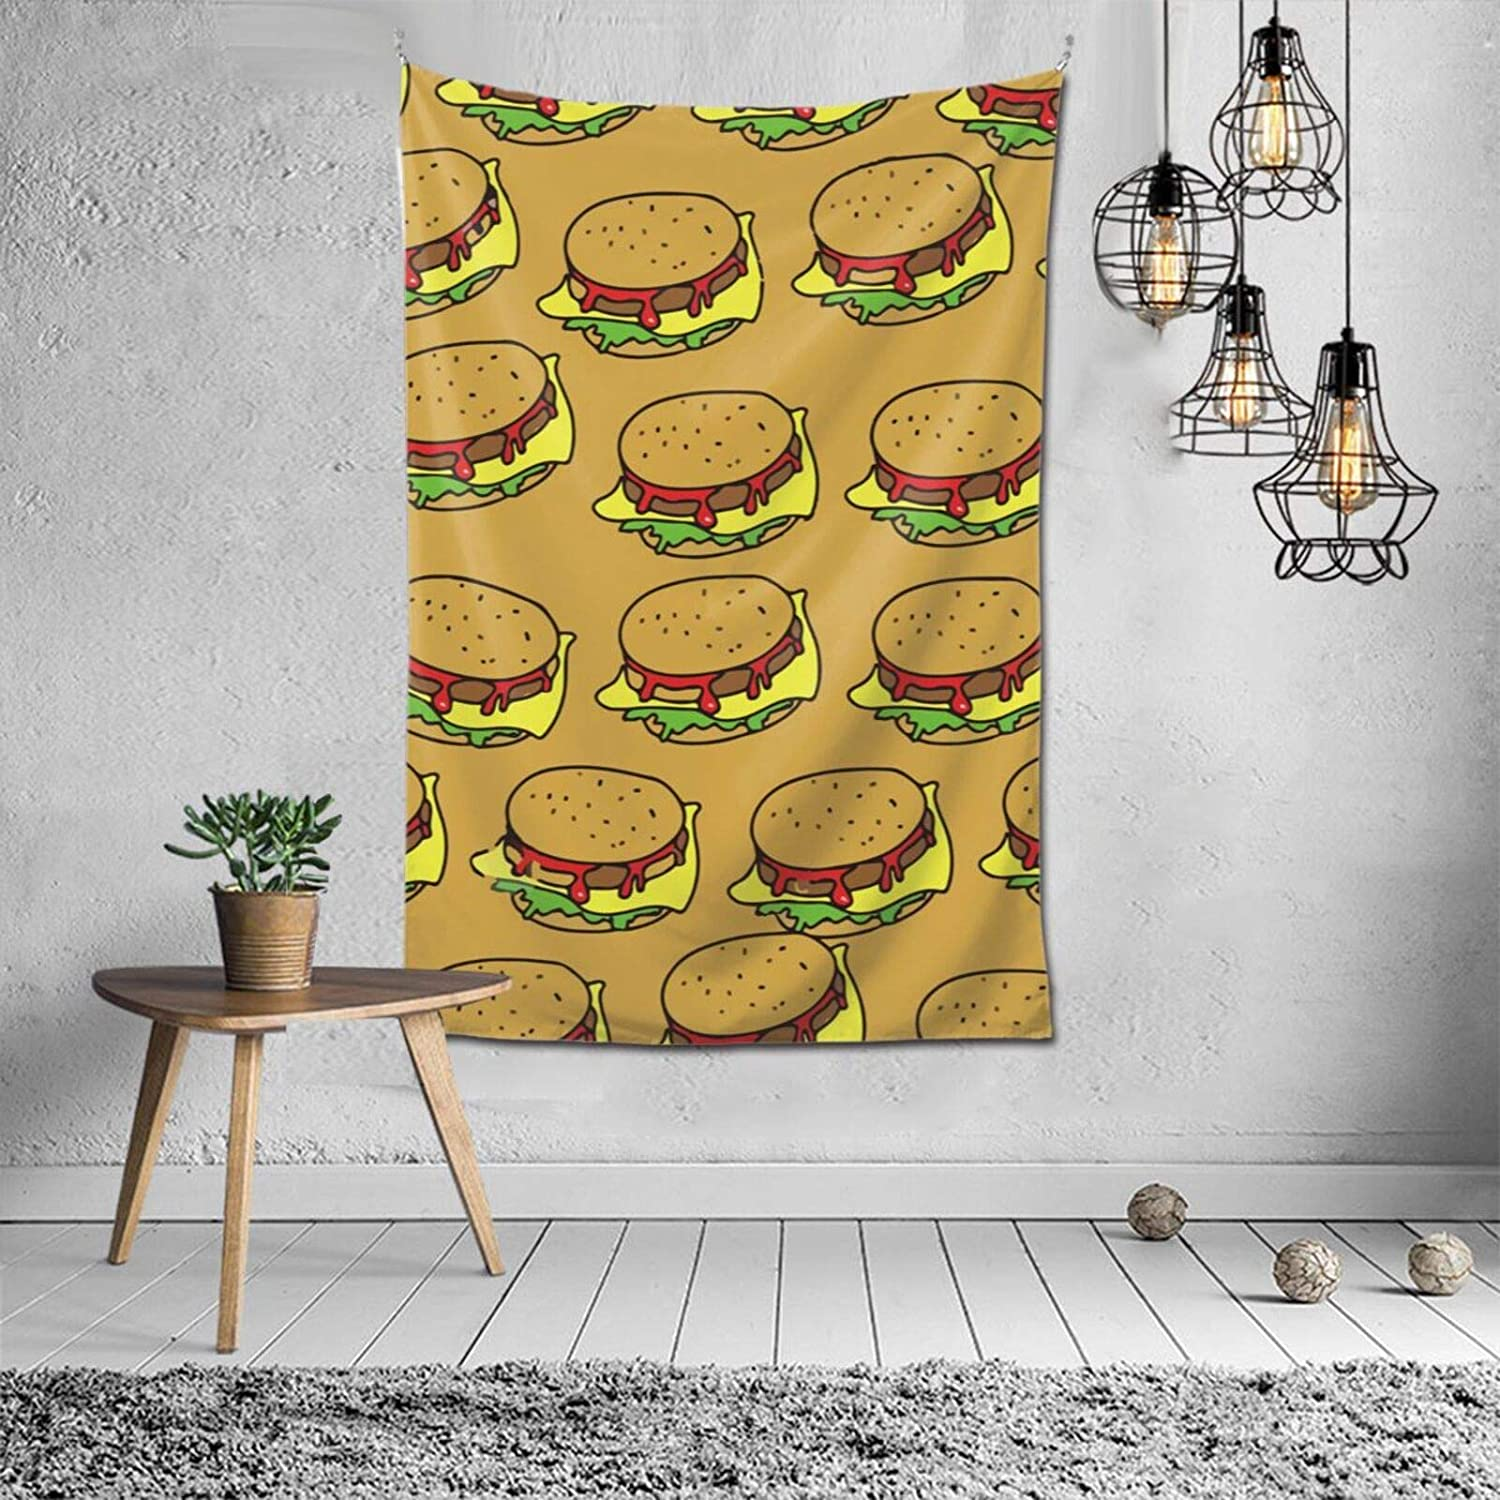 NiYoung Tapestry Wall Hanging Blanket Bedspread Beach Towels Picnic Mat Window Curtain Tapestries, Hamburger Junk Food, Wall Art Decoration for Bedroom, Living Room, Dorm